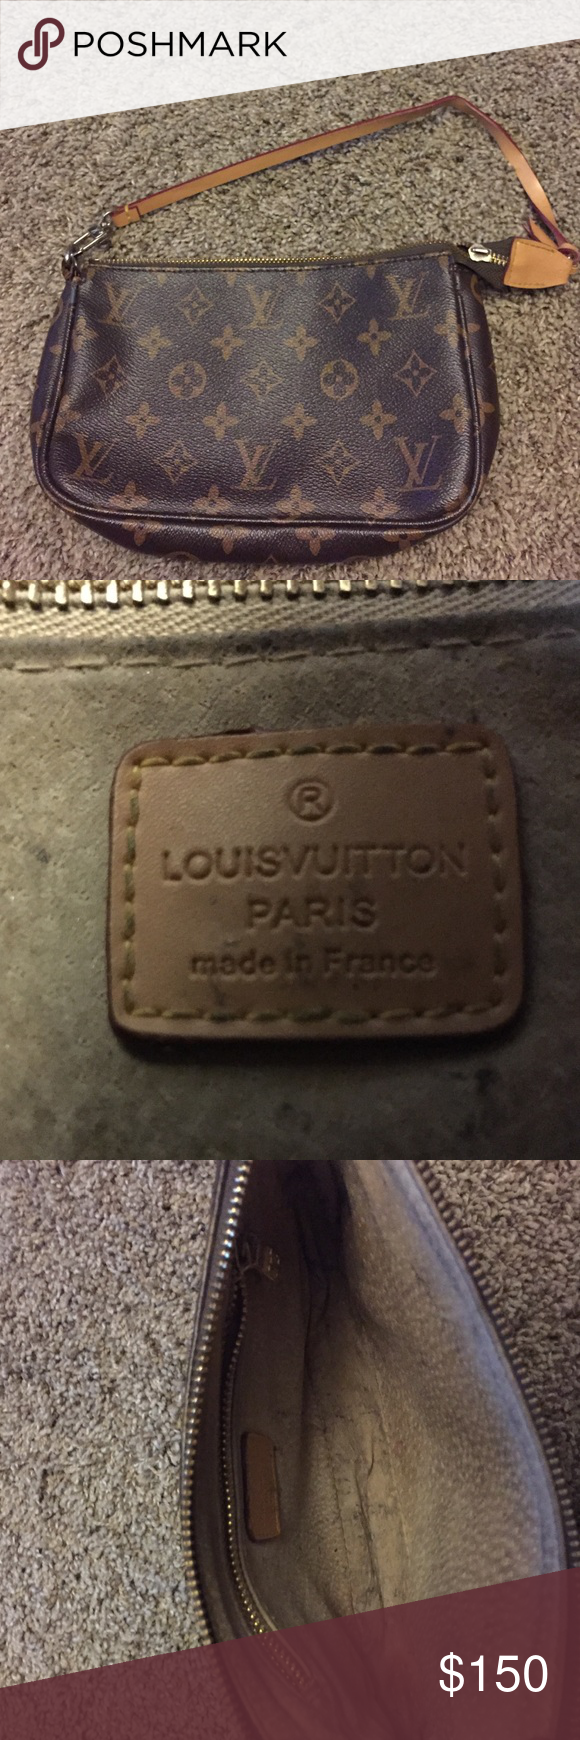 Small monogram Louis Vuitton bag Brown monogram Louis Vuitton bag Louis Vuitton Bags Mini Bags